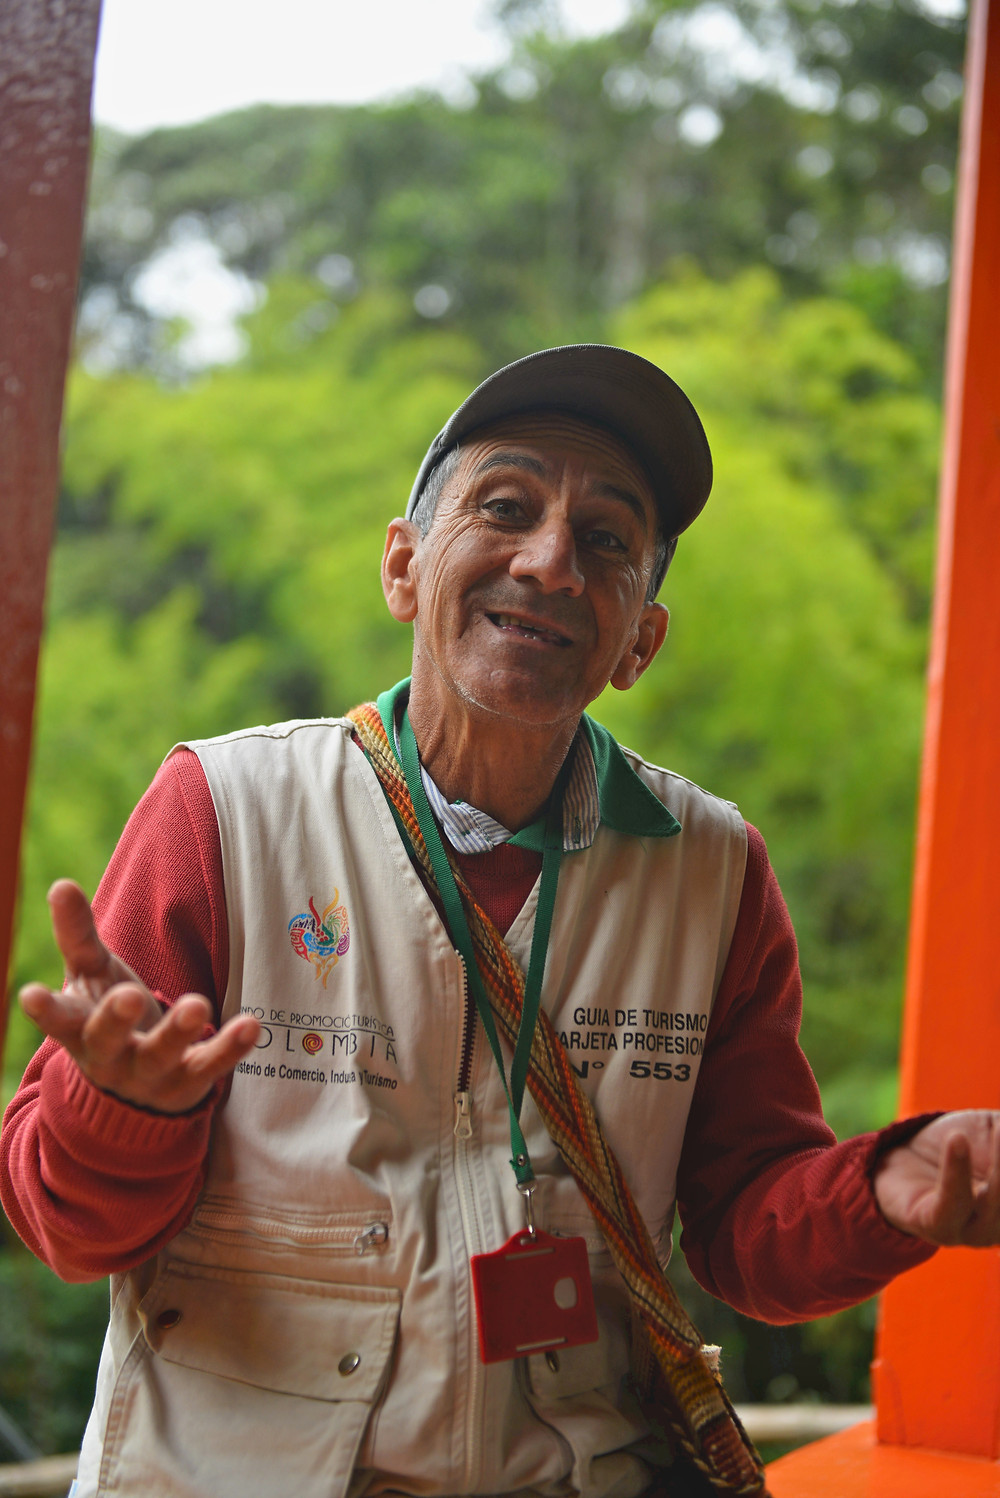 Oscar the local guide at San Augustin